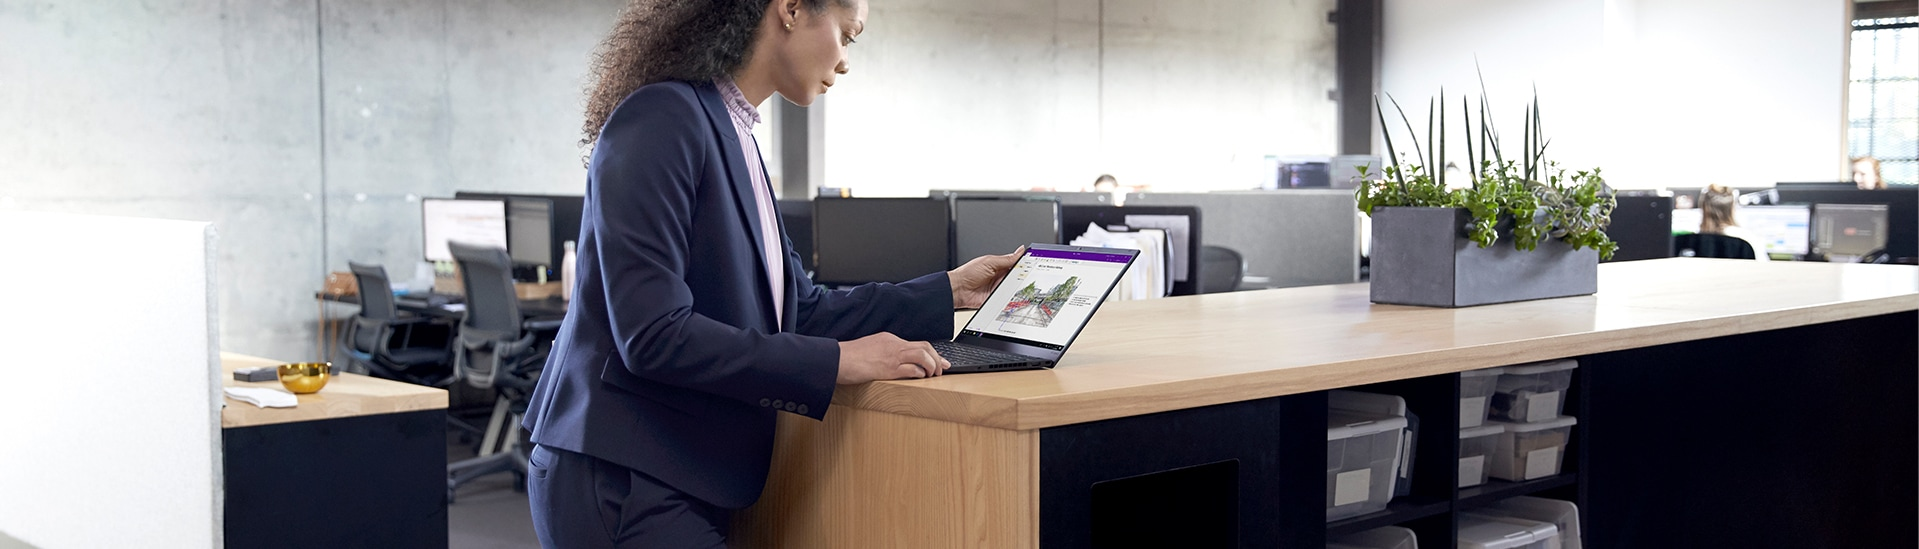 Photograph of a person standing at a counter-height table in a large, open office space looking at a laptop